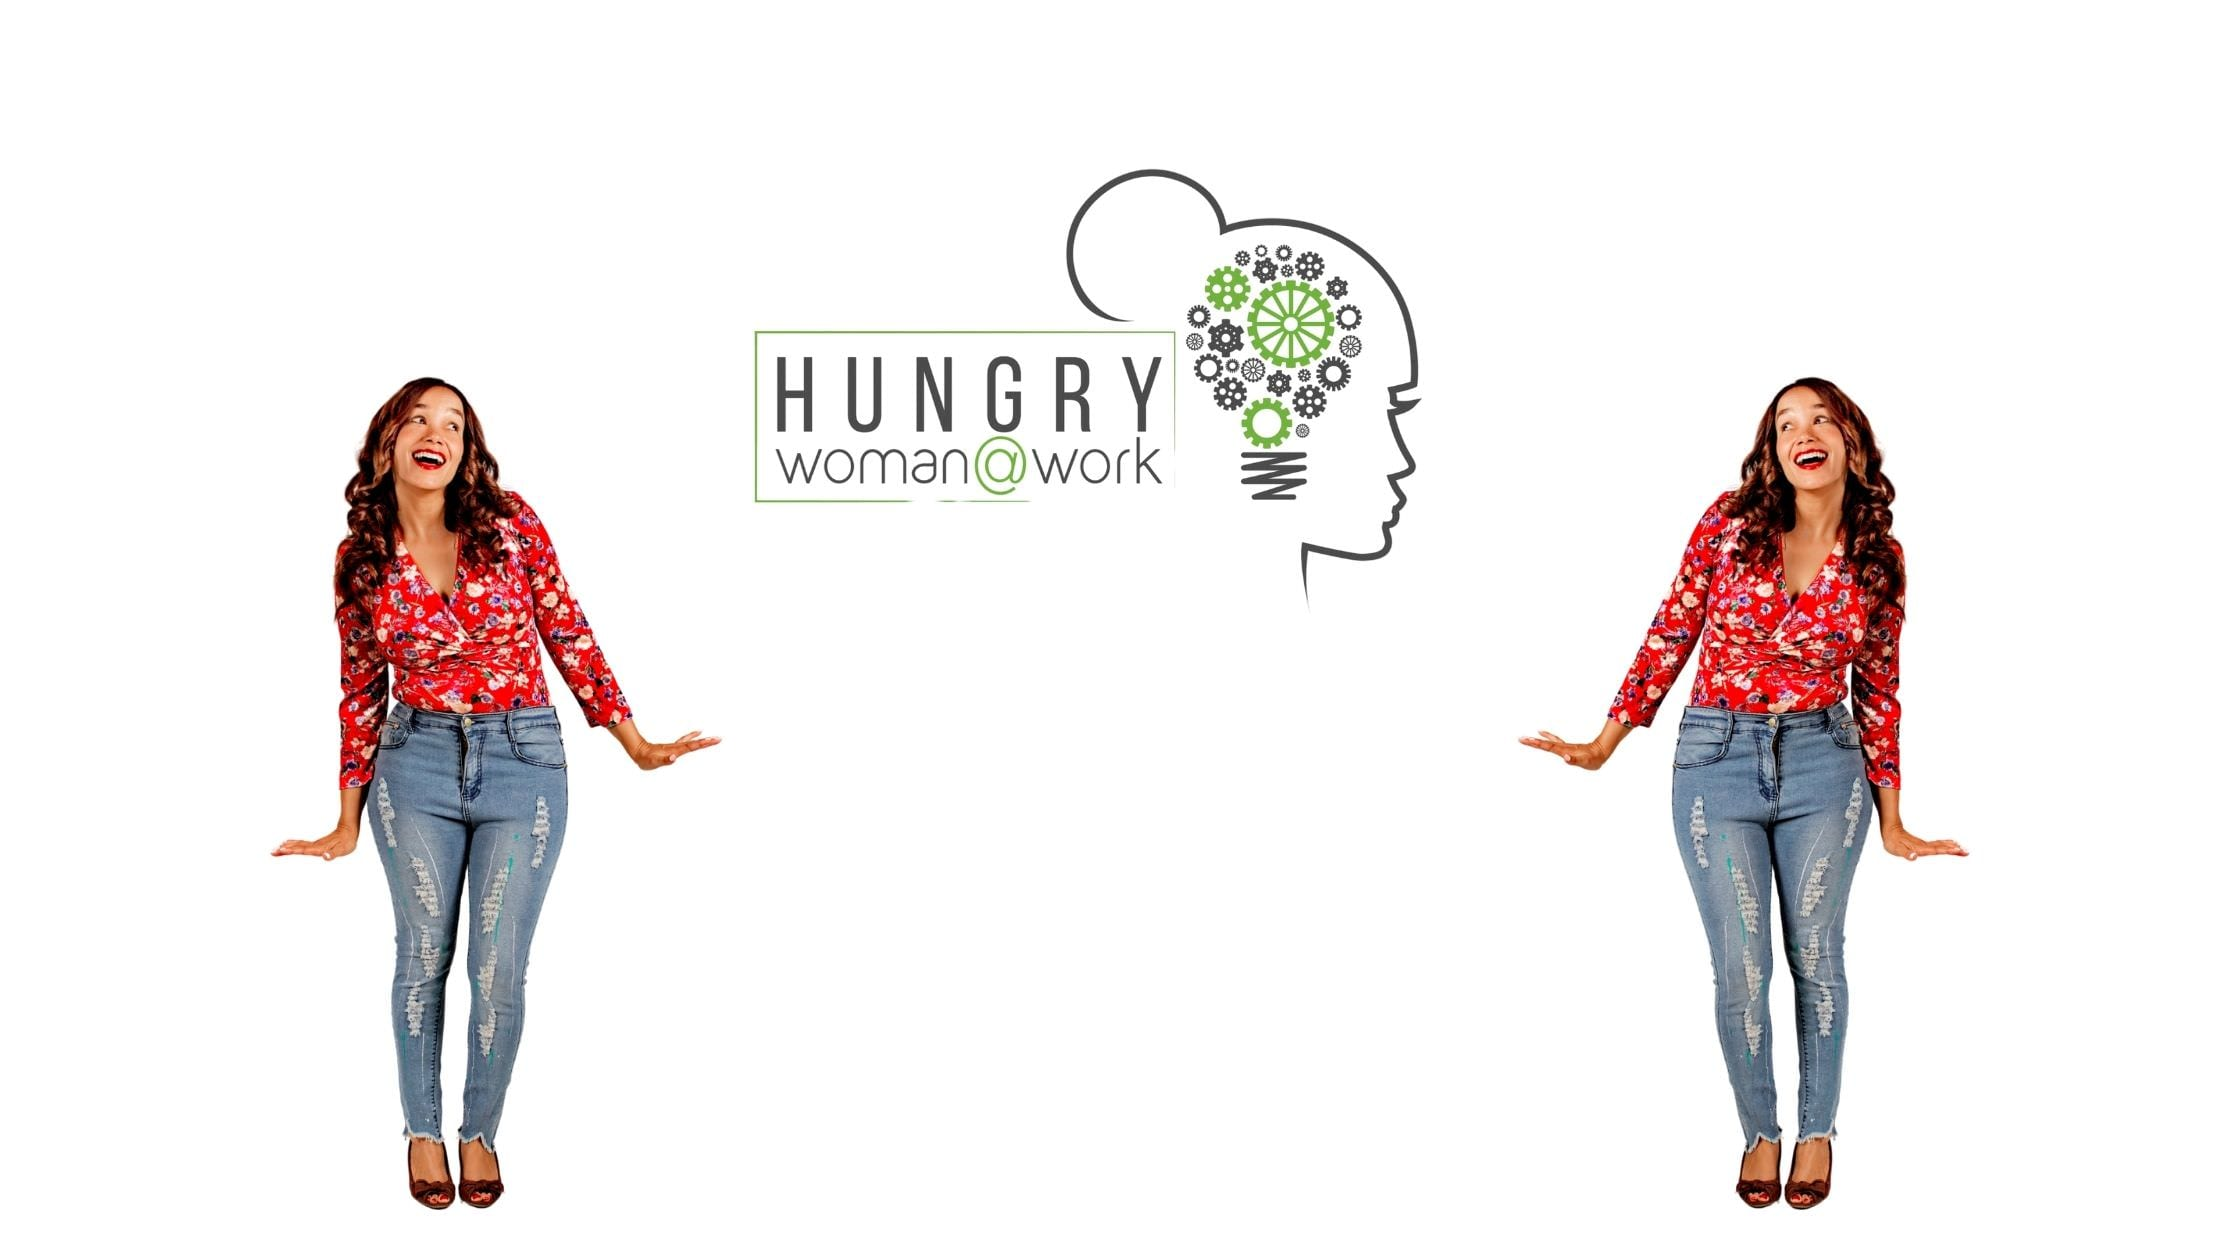 hungry woman at work banner